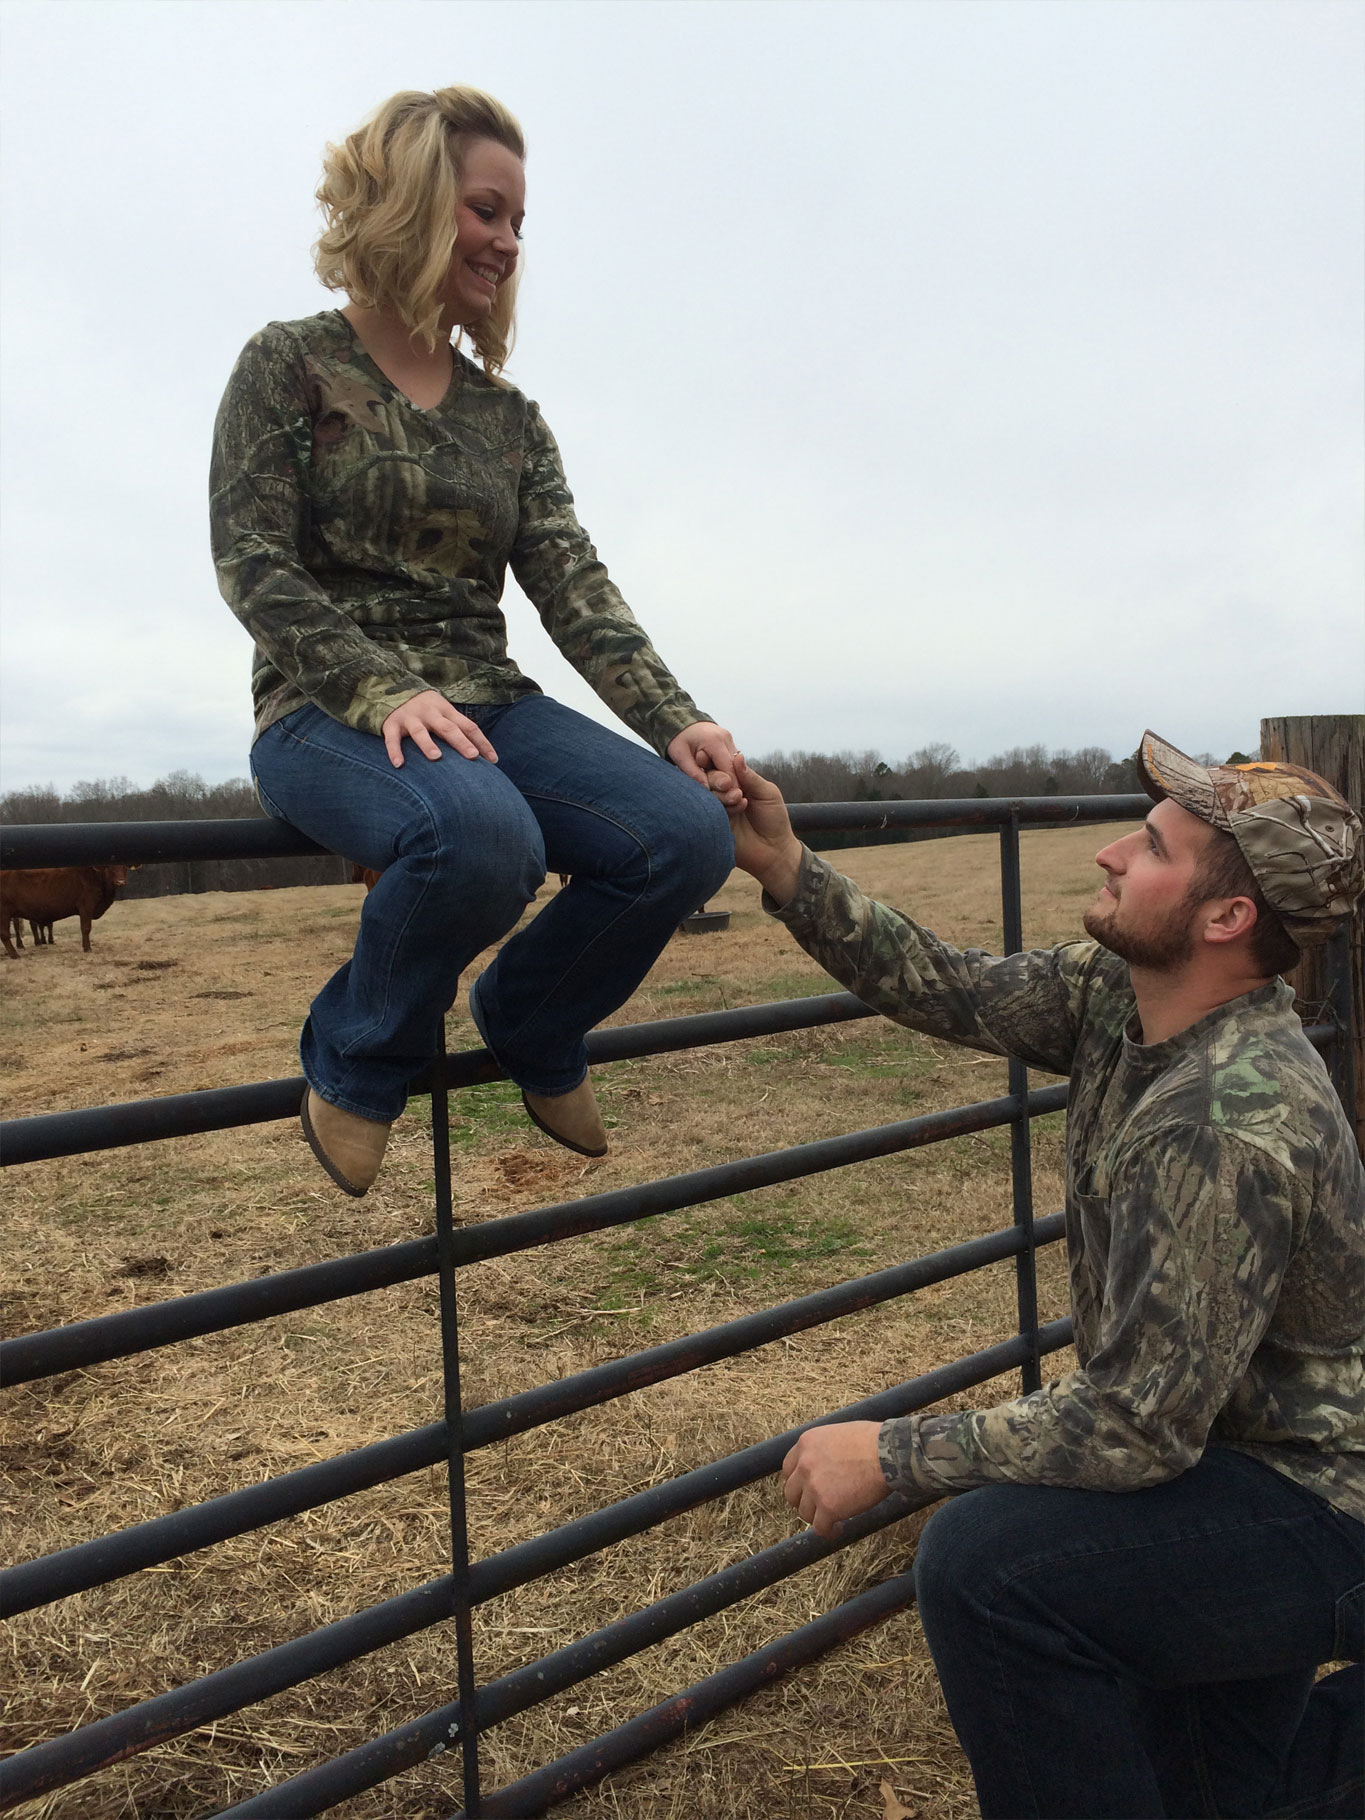 The Hay Bales, And Lauren's Engagement Ring On Top Of A Bullet Shell  Gave That Added Touch Of Country Pride That's Definitely In Their Blood!